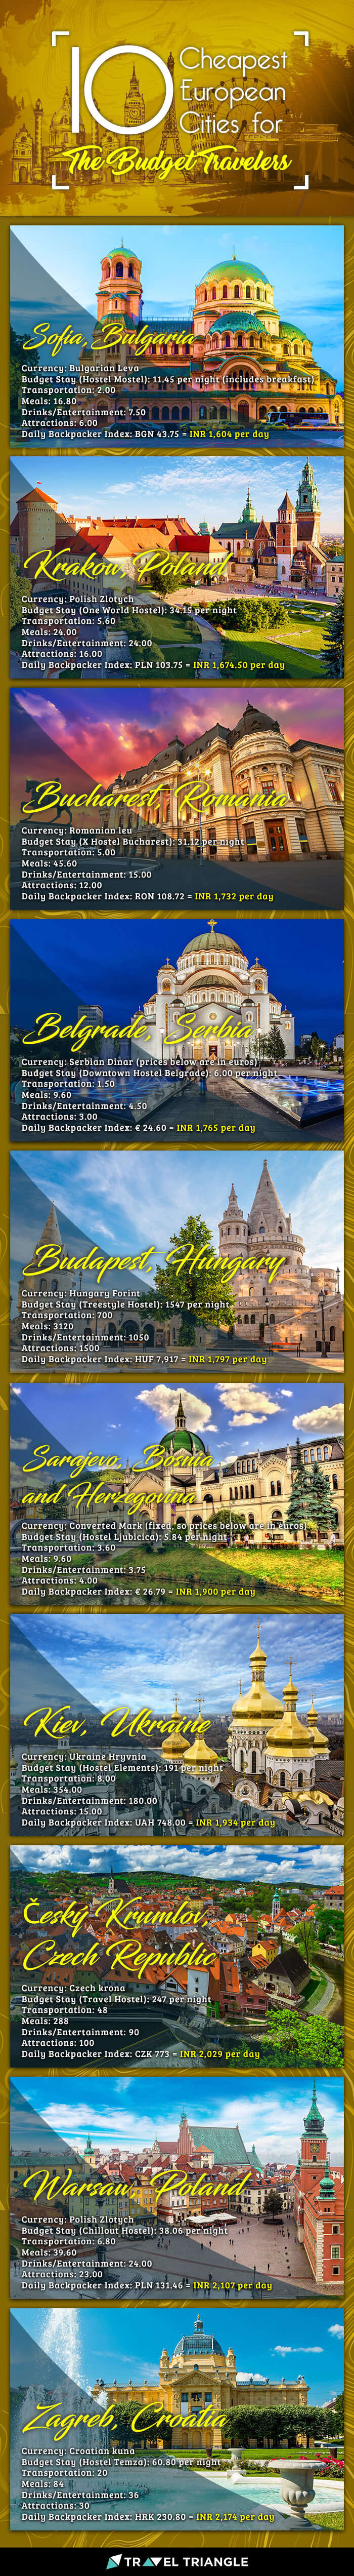 Cheapest cities in Europe for Indians